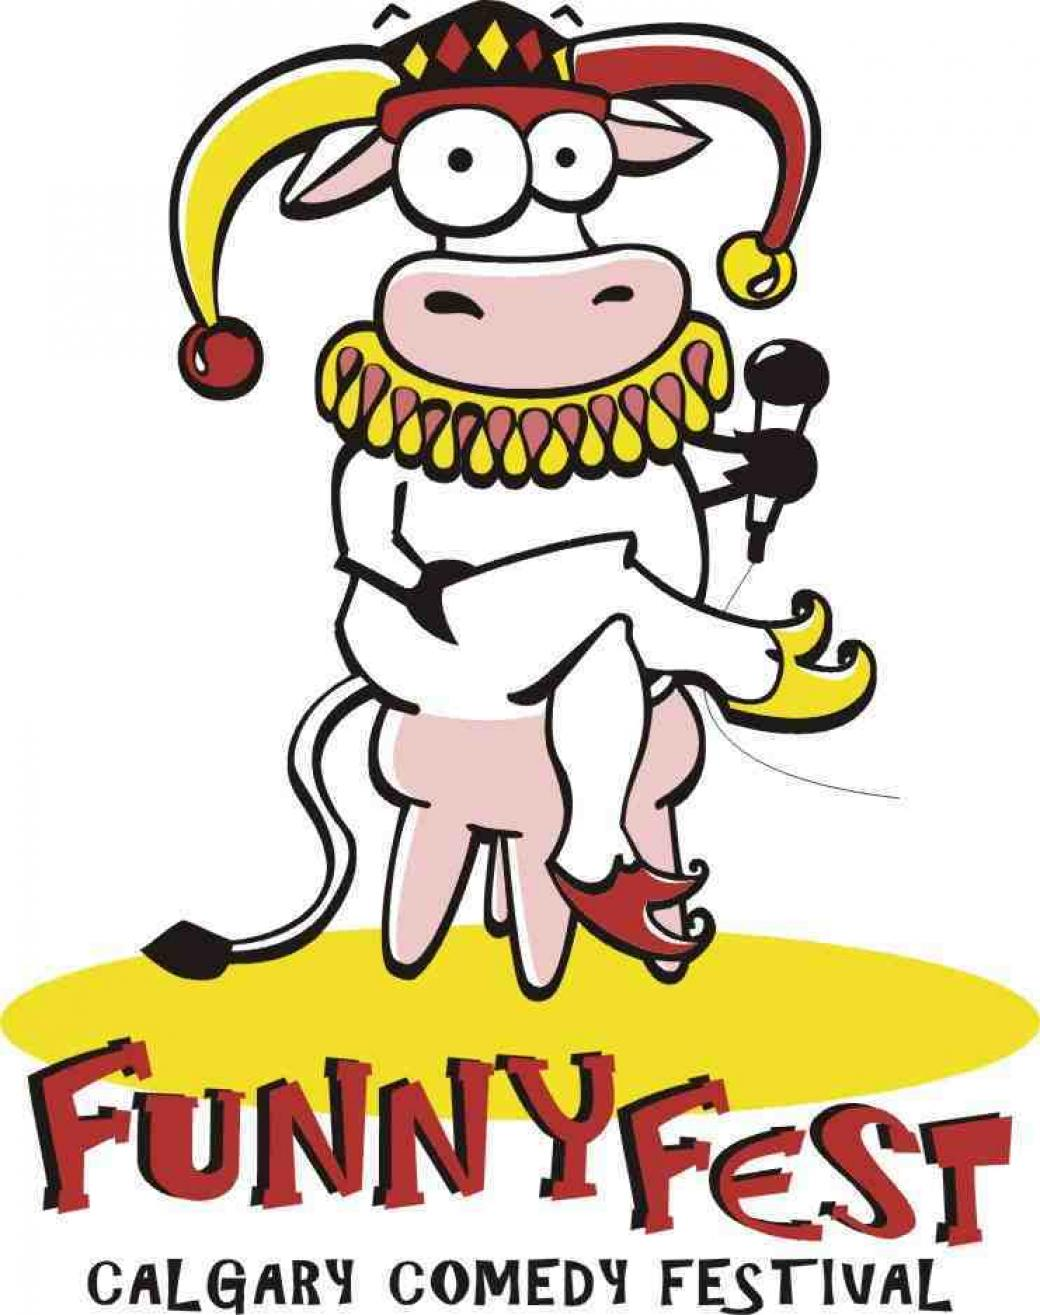 17th Annual Funnyfest Talent Search